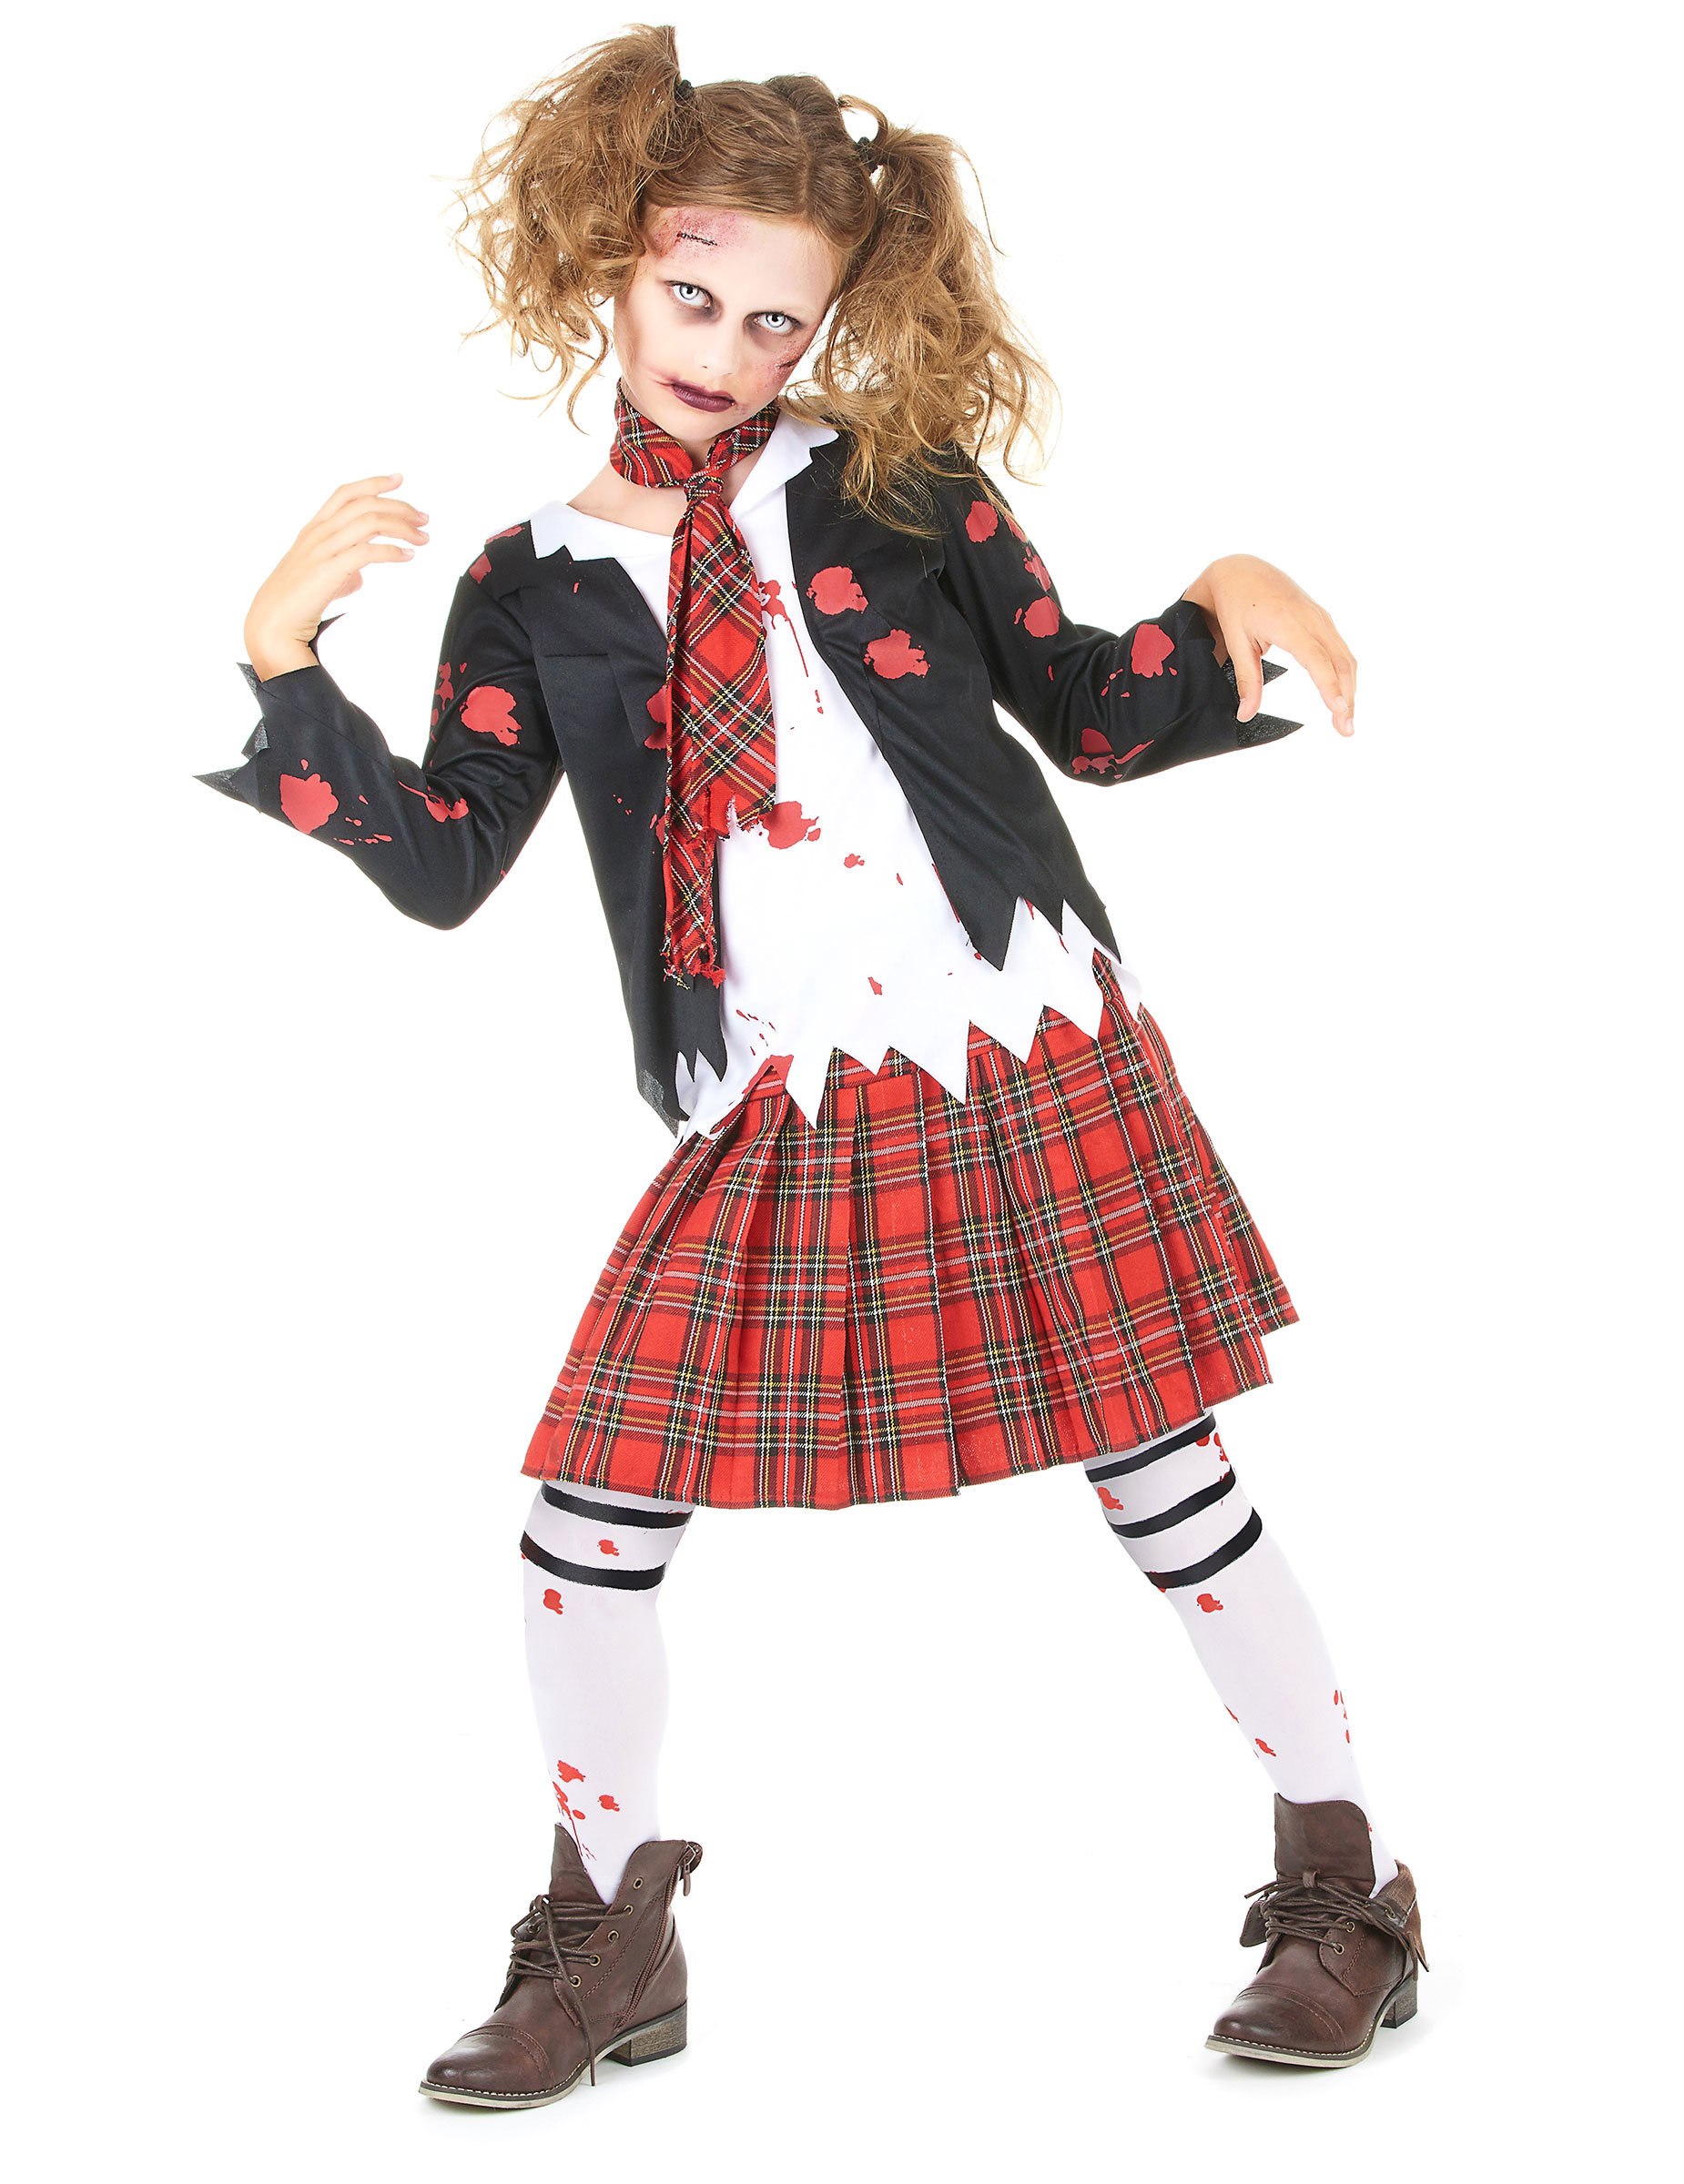 D guisement coli re zombie fille halloween deguise toi - Deguisement halloween enfant fille ...